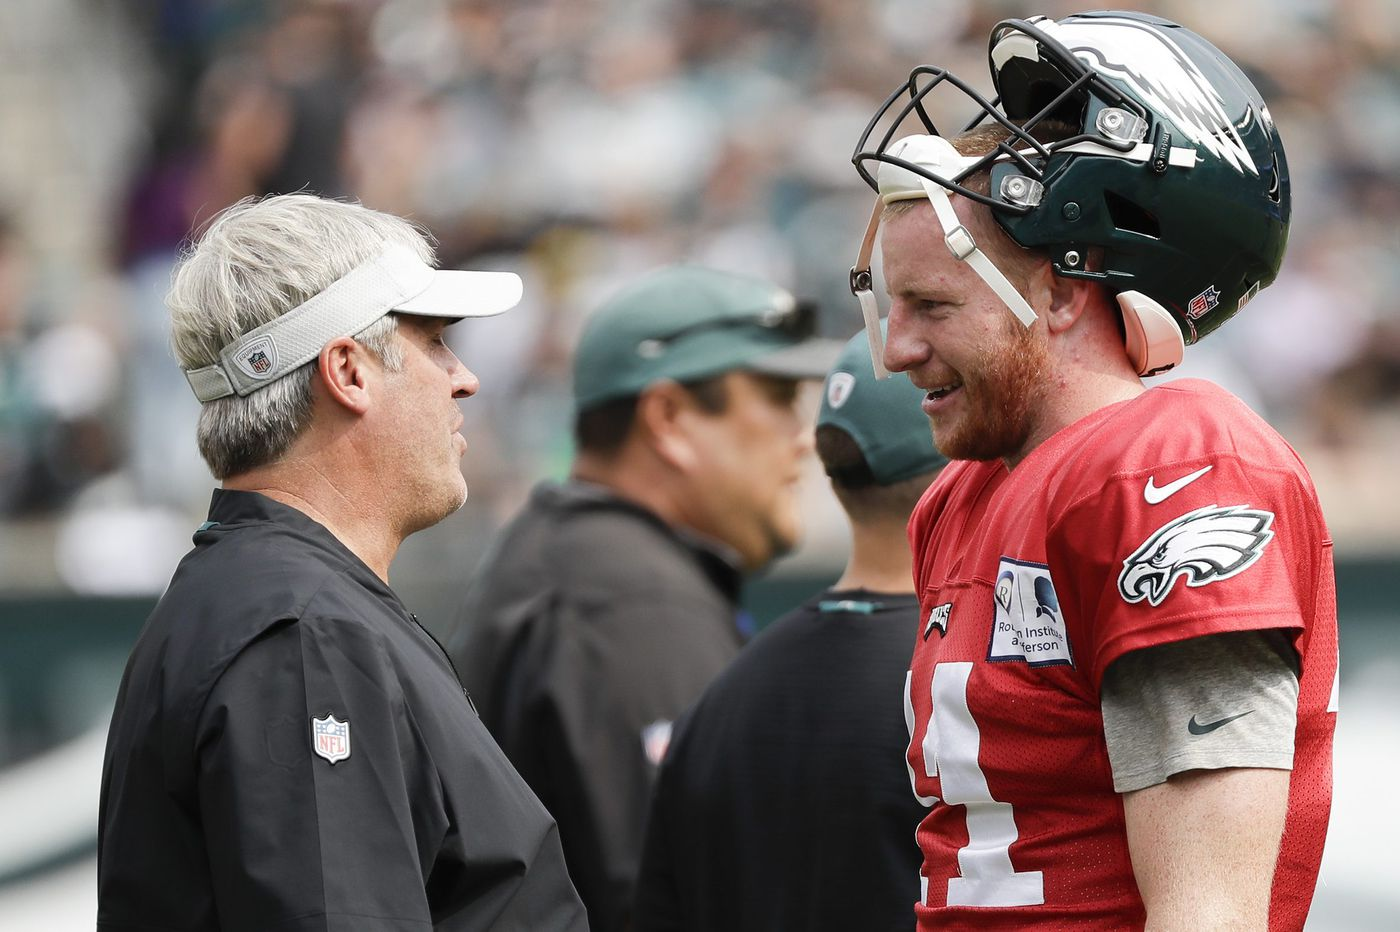 Carson Wentz's return 'still a medical issue' while Eagles await clearance